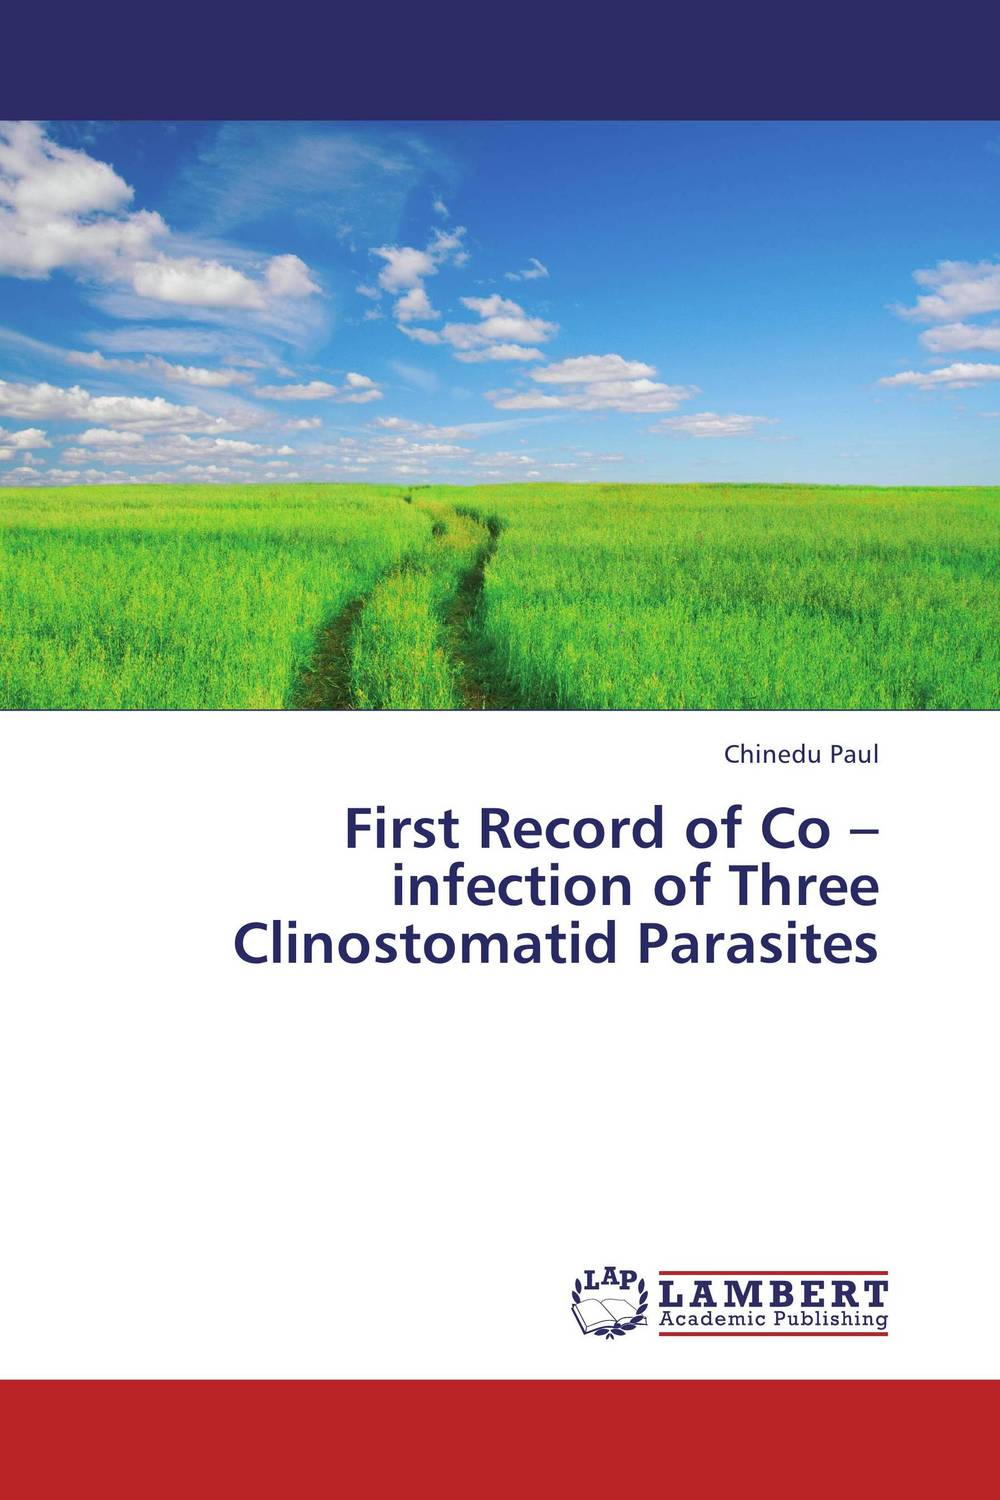 цены First Record of Co – infection of Three Clinostomatid Parasites